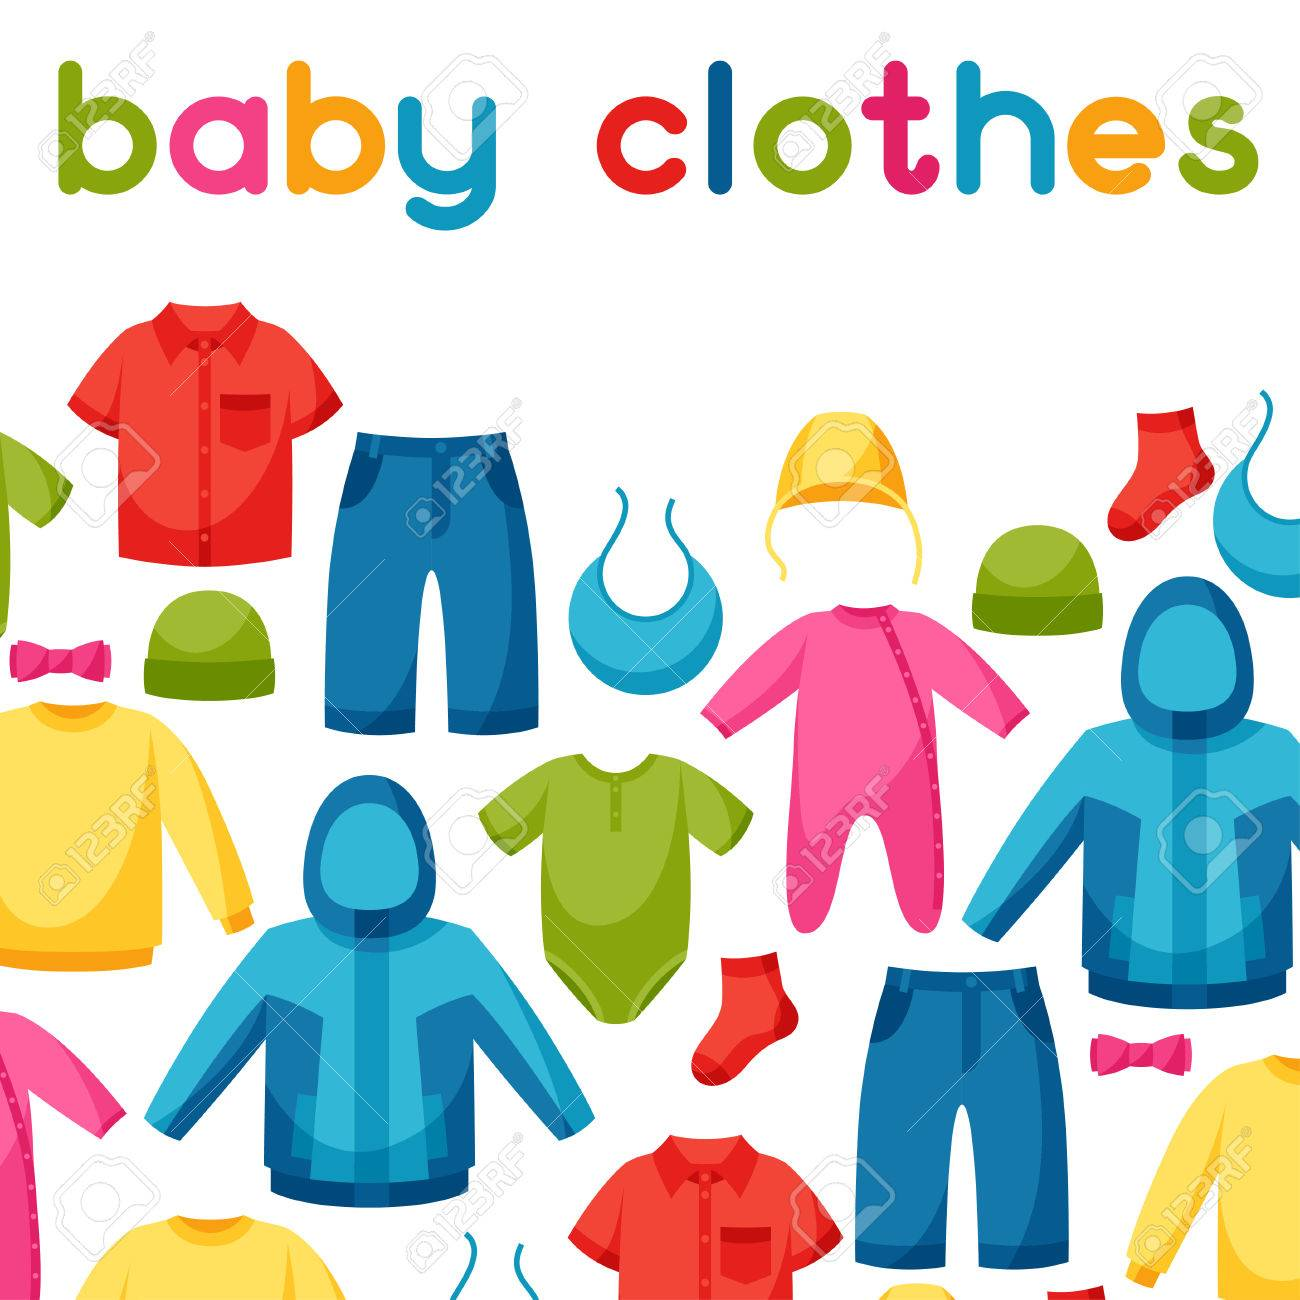 c0a677972a946 Baby clothes. Background with clothing items for newborns and children.  Stock Vector - 48998813